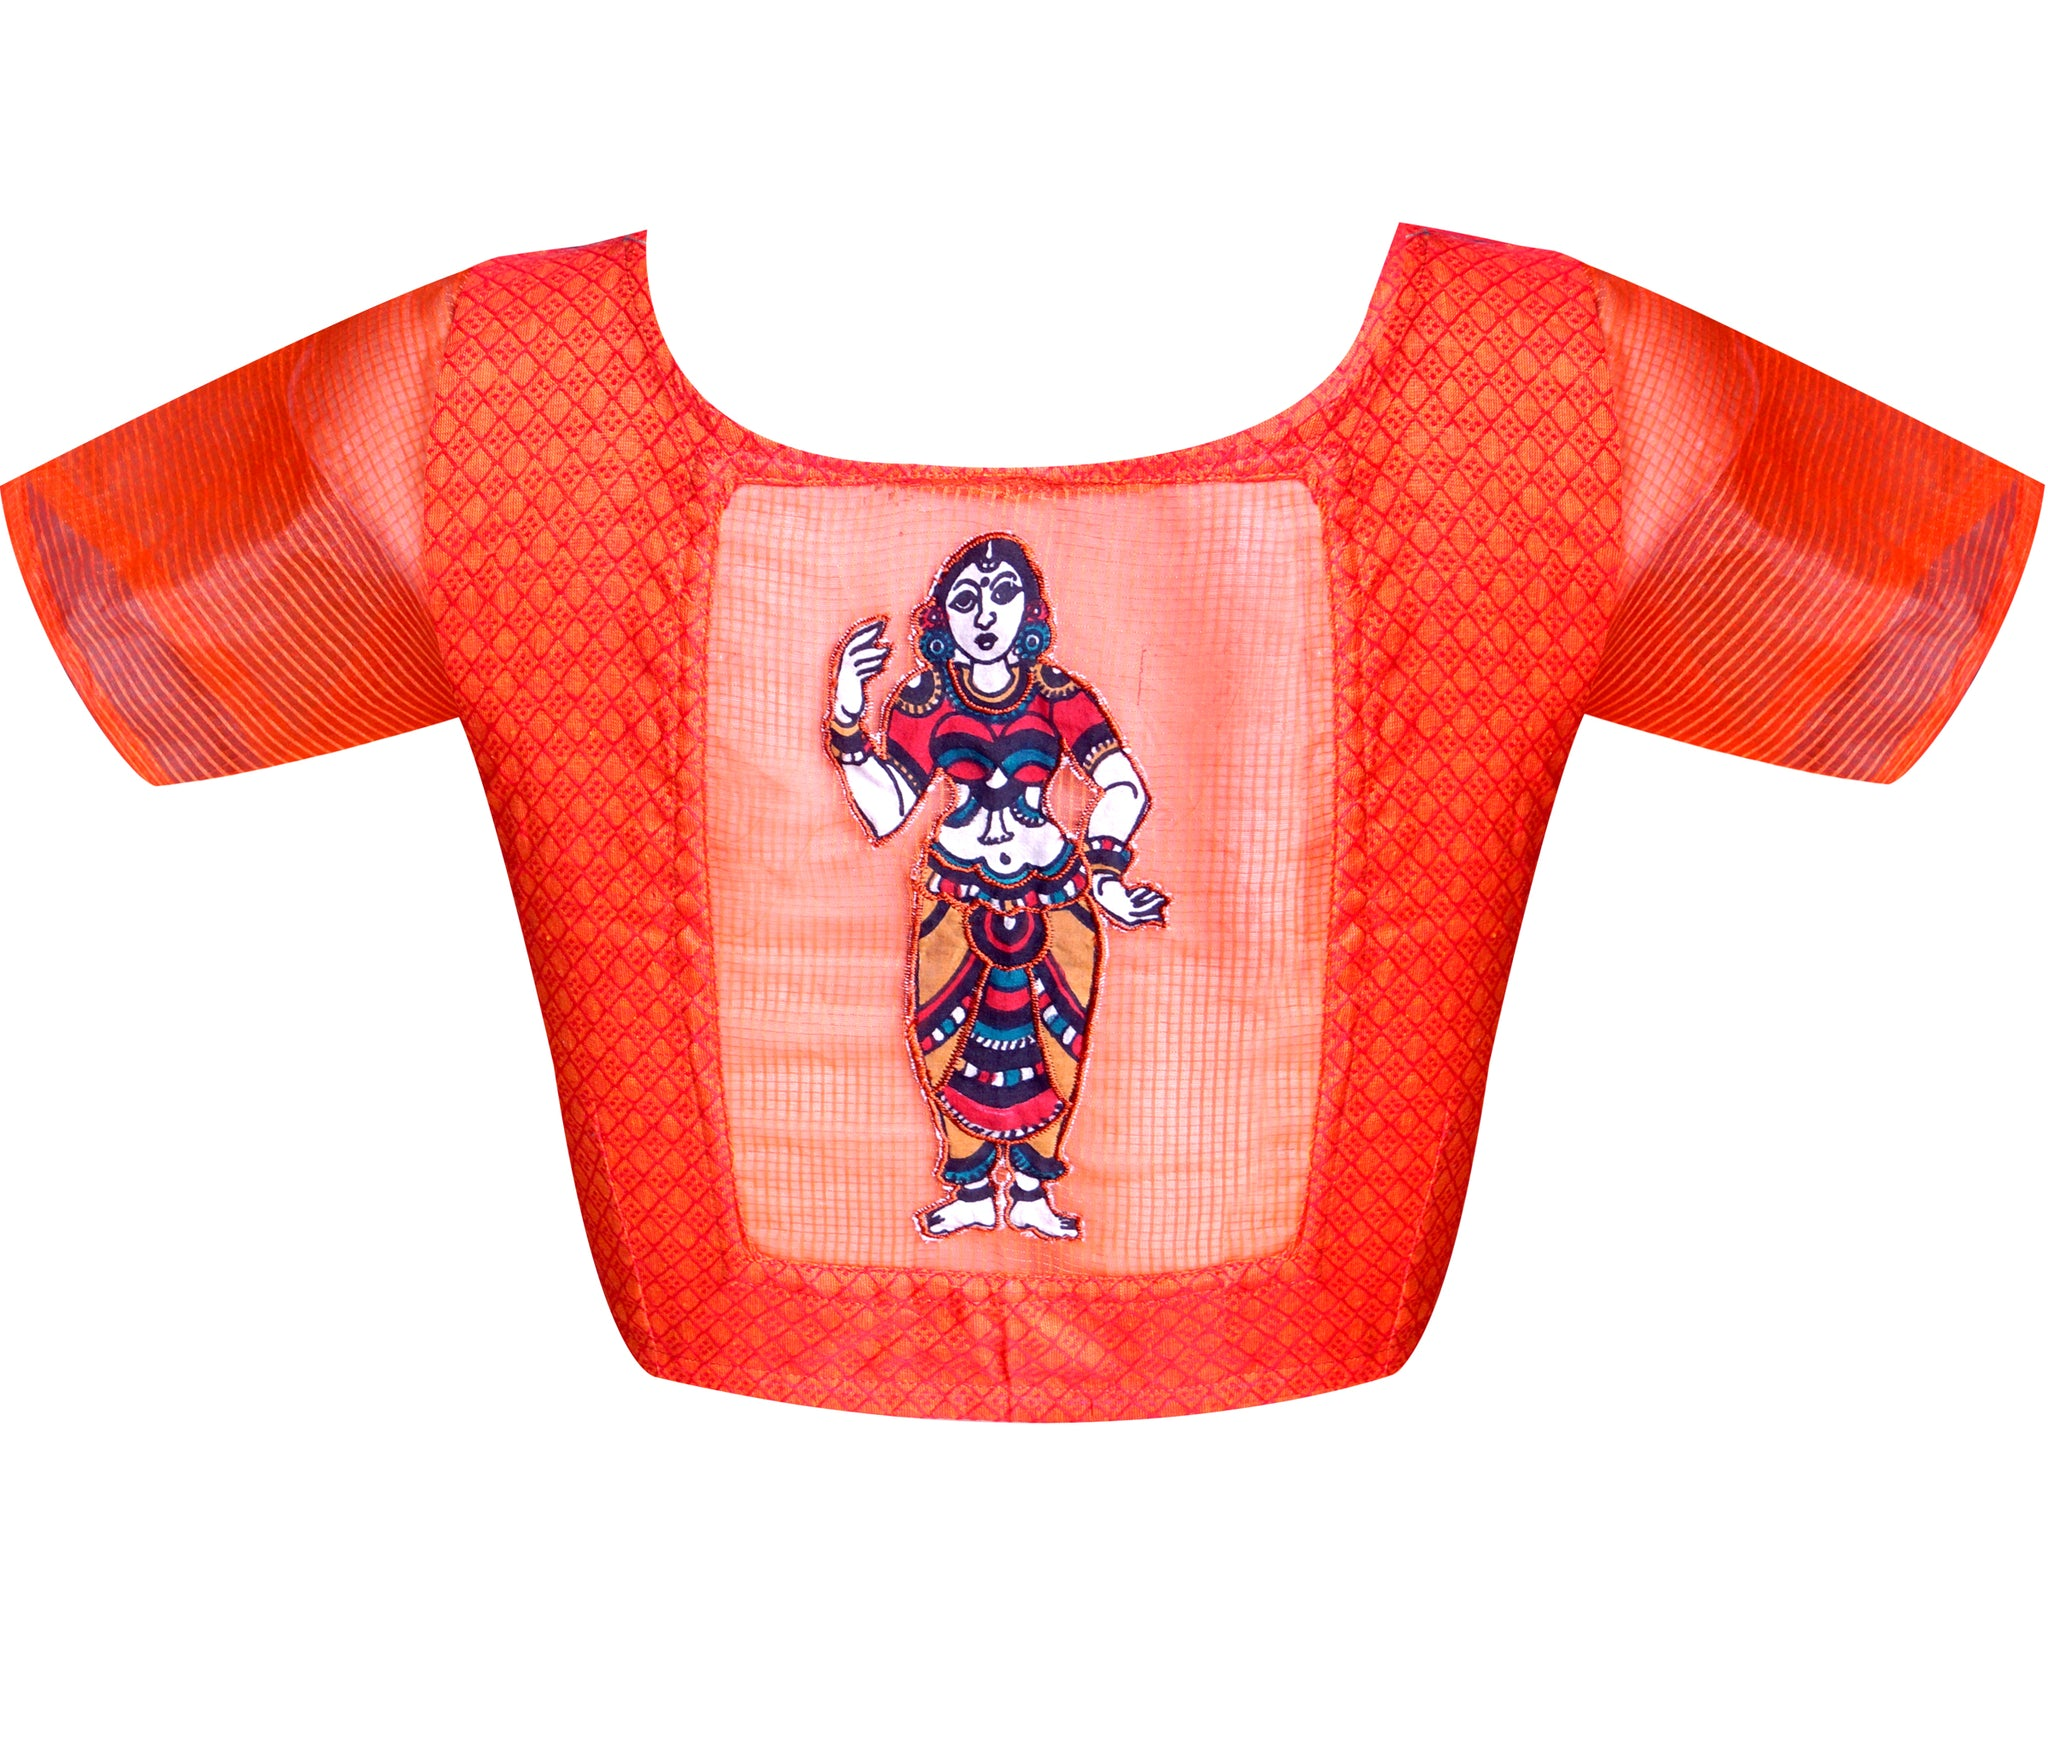 Boat Neck Dobby & Kota Applique Work Readymade Blouse